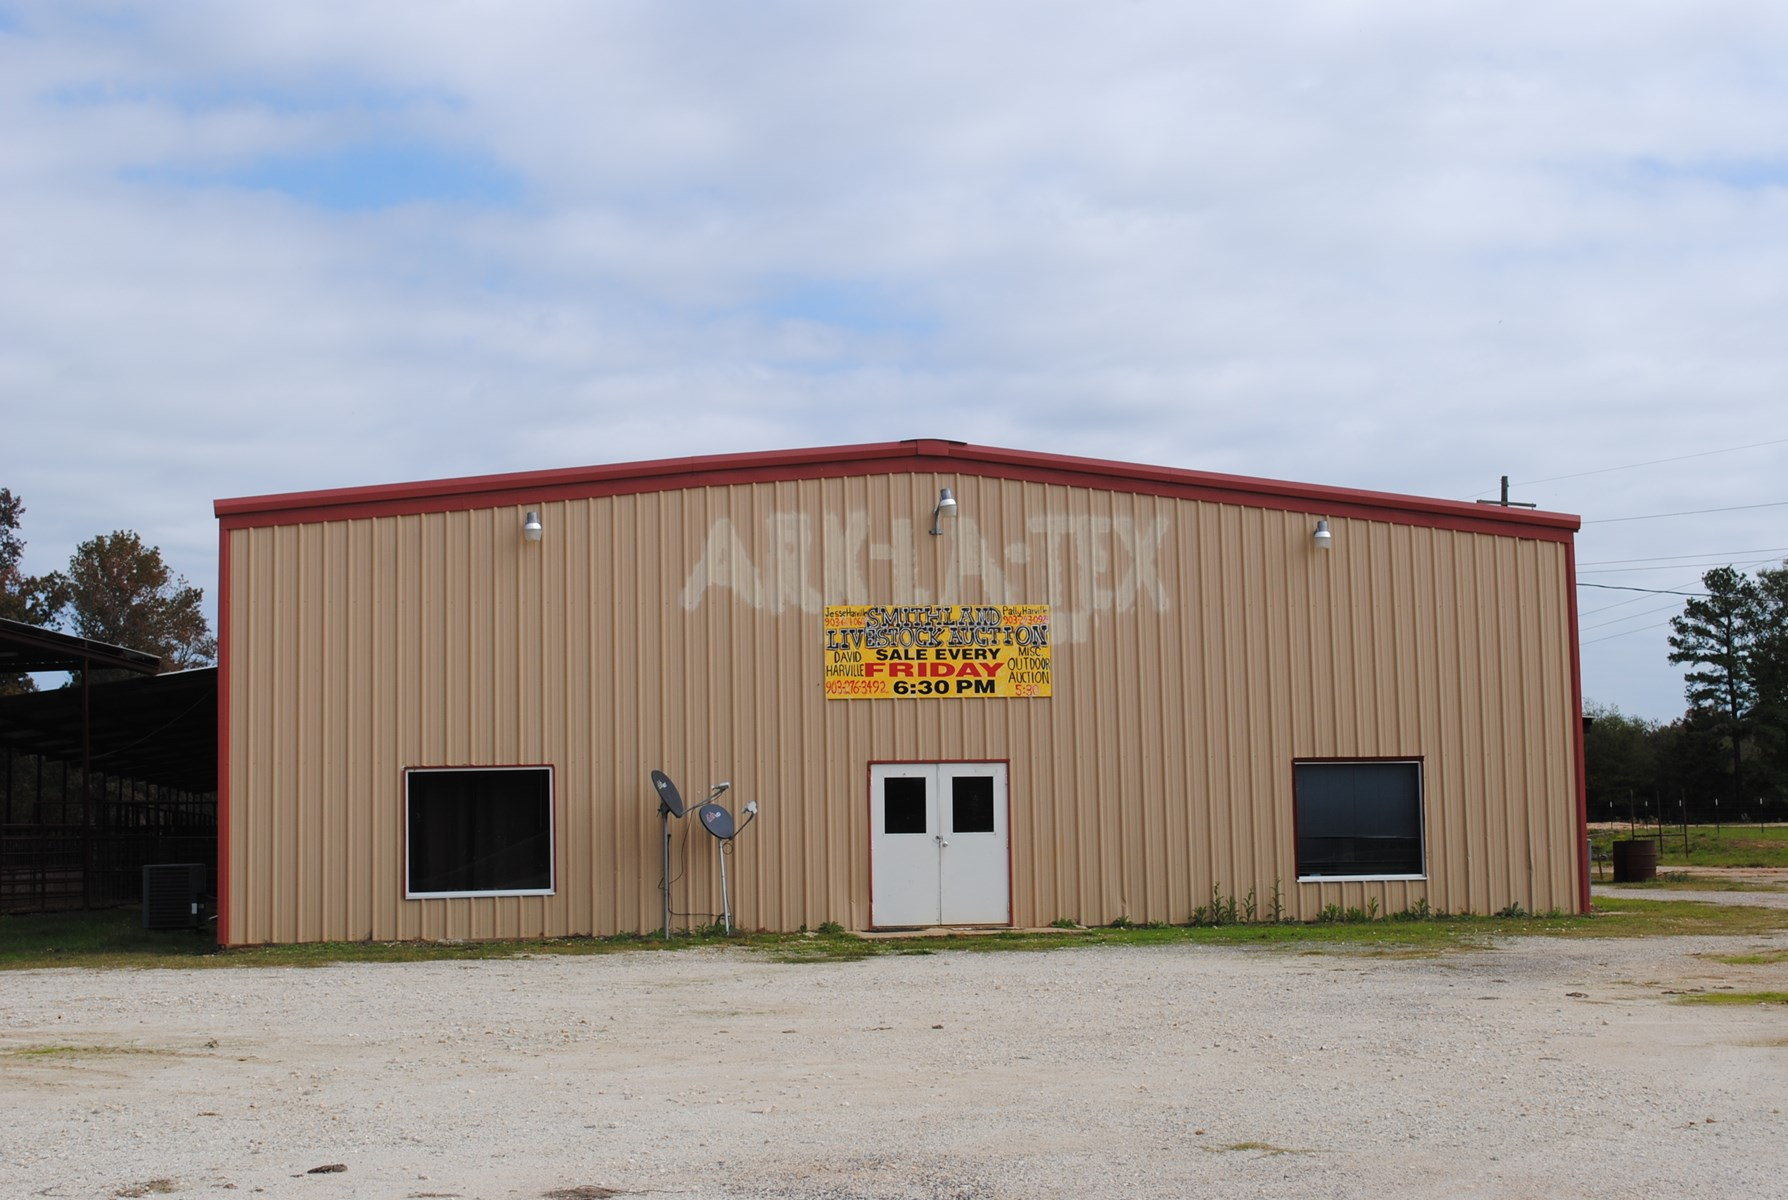 Livestock SaleBarn/Feedlot For Sale Marion County Tx Acreage